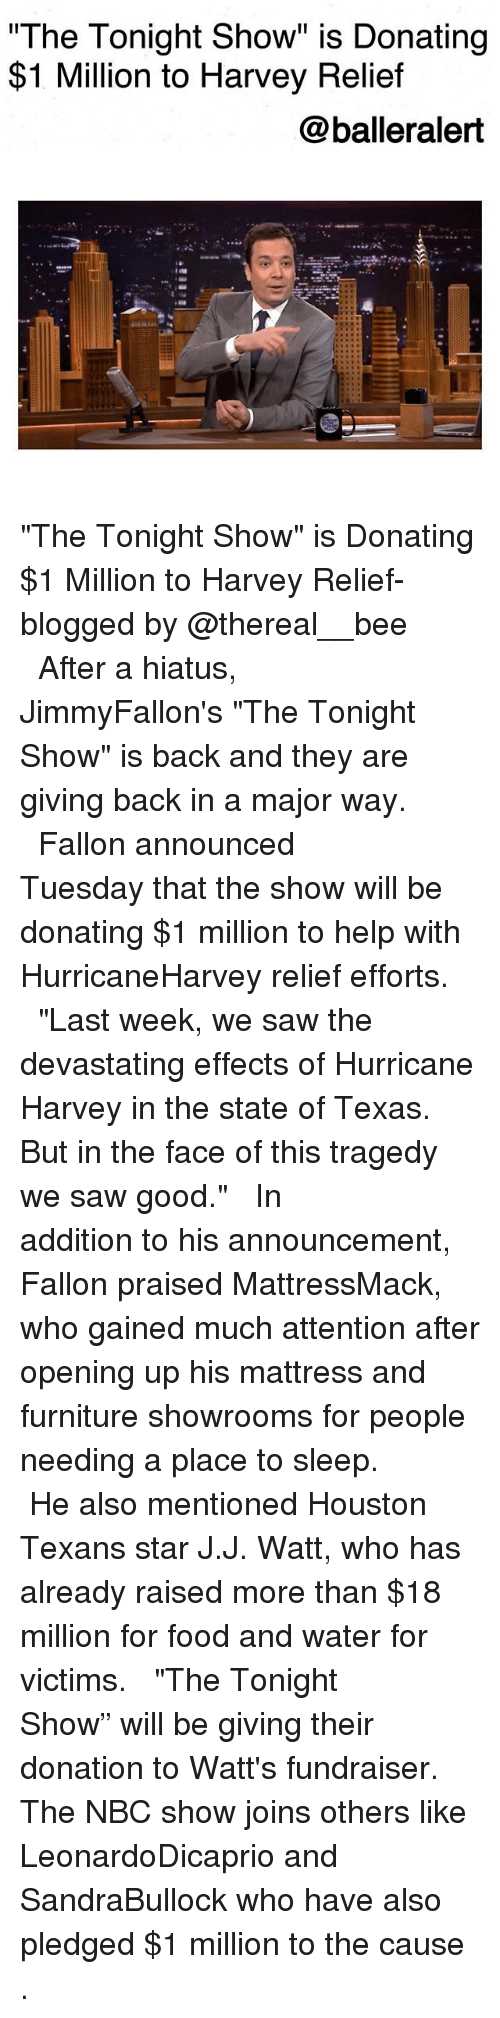 "J J Watt: The Tonight Show"" is Donating  $1 Million to Harvey Relief  @balleralert  s@汽. ""The Tonight Show"" is Donating $1 Million to Harvey Relief-blogged by @thereal__bee ⠀⠀⠀⠀⠀⠀⠀⠀⠀ ⠀⠀ After a hiatus, JimmyFallon's ""The Tonight Show"" is back and they are giving back in a major way. ⠀⠀⠀⠀⠀⠀⠀⠀⠀ ⠀⠀ Fallon announced Tuesday that the show will be donating $1 million to help with HurricaneHarvey relief efforts. ⠀⠀⠀⠀⠀⠀⠀⠀⠀ ⠀⠀ ""Last week, we saw the devastating effects of Hurricane Harvey in the state of Texas. But in the face of this tragedy we saw good."" ⠀⠀⠀⠀⠀⠀⠀⠀⠀ ⠀⠀ In addition to his announcement, Fallon praised MattressMack, who gained much attention after opening up his mattress and furniture showrooms for people needing a place to sleep. ⠀⠀⠀⠀⠀⠀⠀⠀⠀ ⠀⠀ He also mentioned Houston Texans star J.J. Watt, who has already raised more than $18 million for food and water for victims. ⠀⠀⠀⠀⠀⠀⠀⠀⠀ ⠀⠀ ""The Tonight Show"" will be giving their donation to Watt's fundraiser. The NBC show joins others like LeonardoDicaprio and SandraBullock who have also pledged $1 million to the cause ."